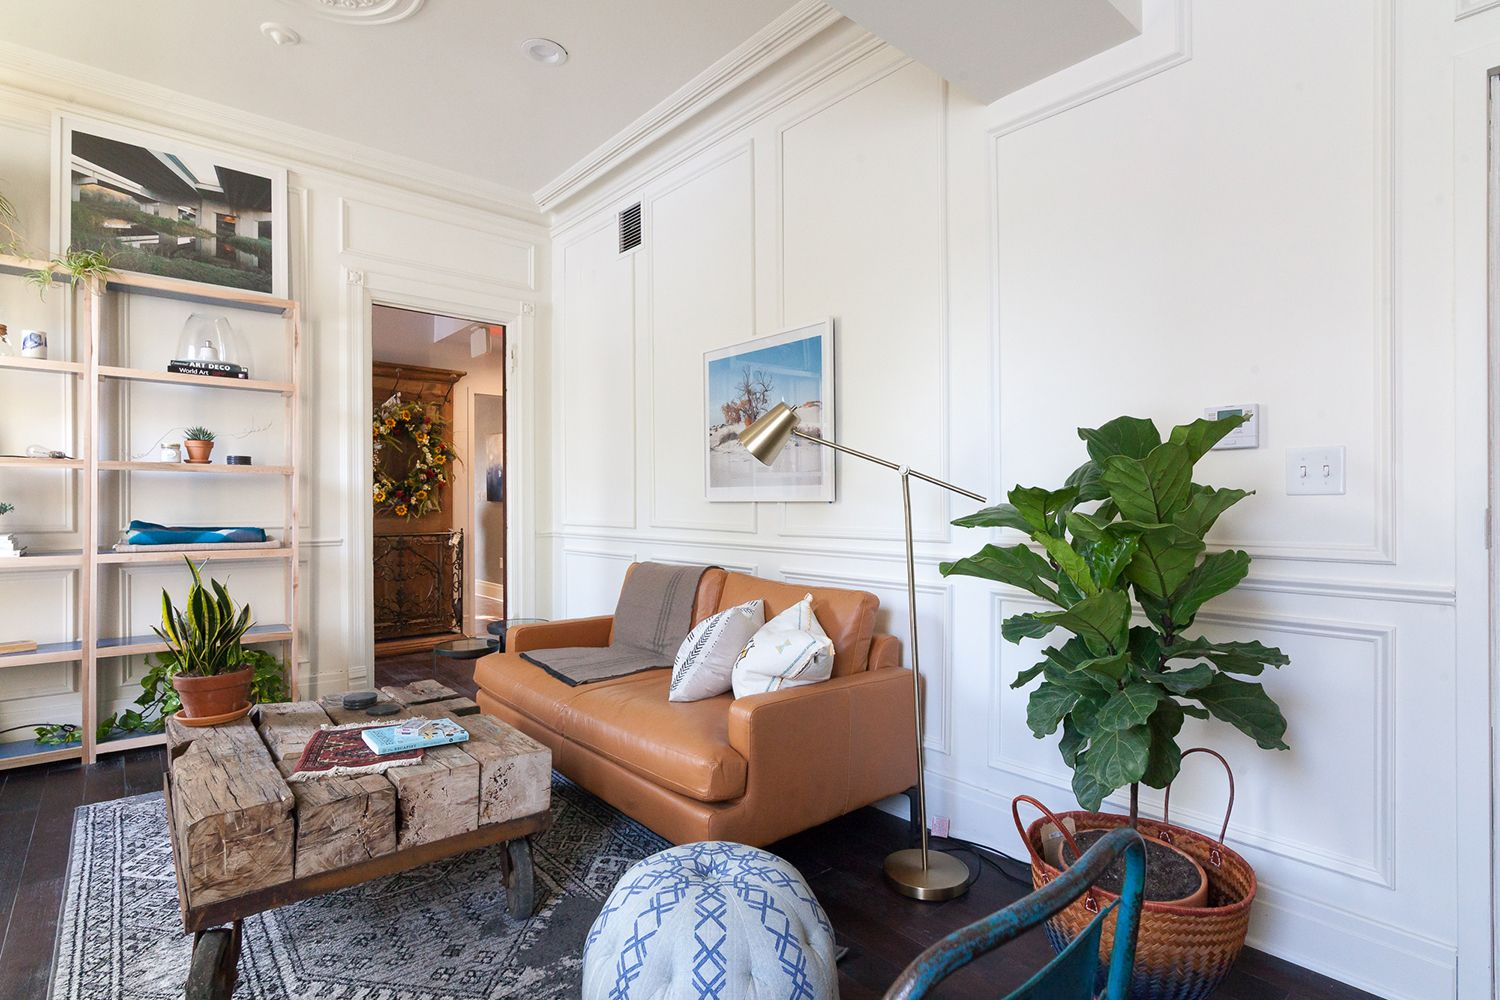 Monochromatic walls awash in Solo C2-884 highlight the woodwork and ...